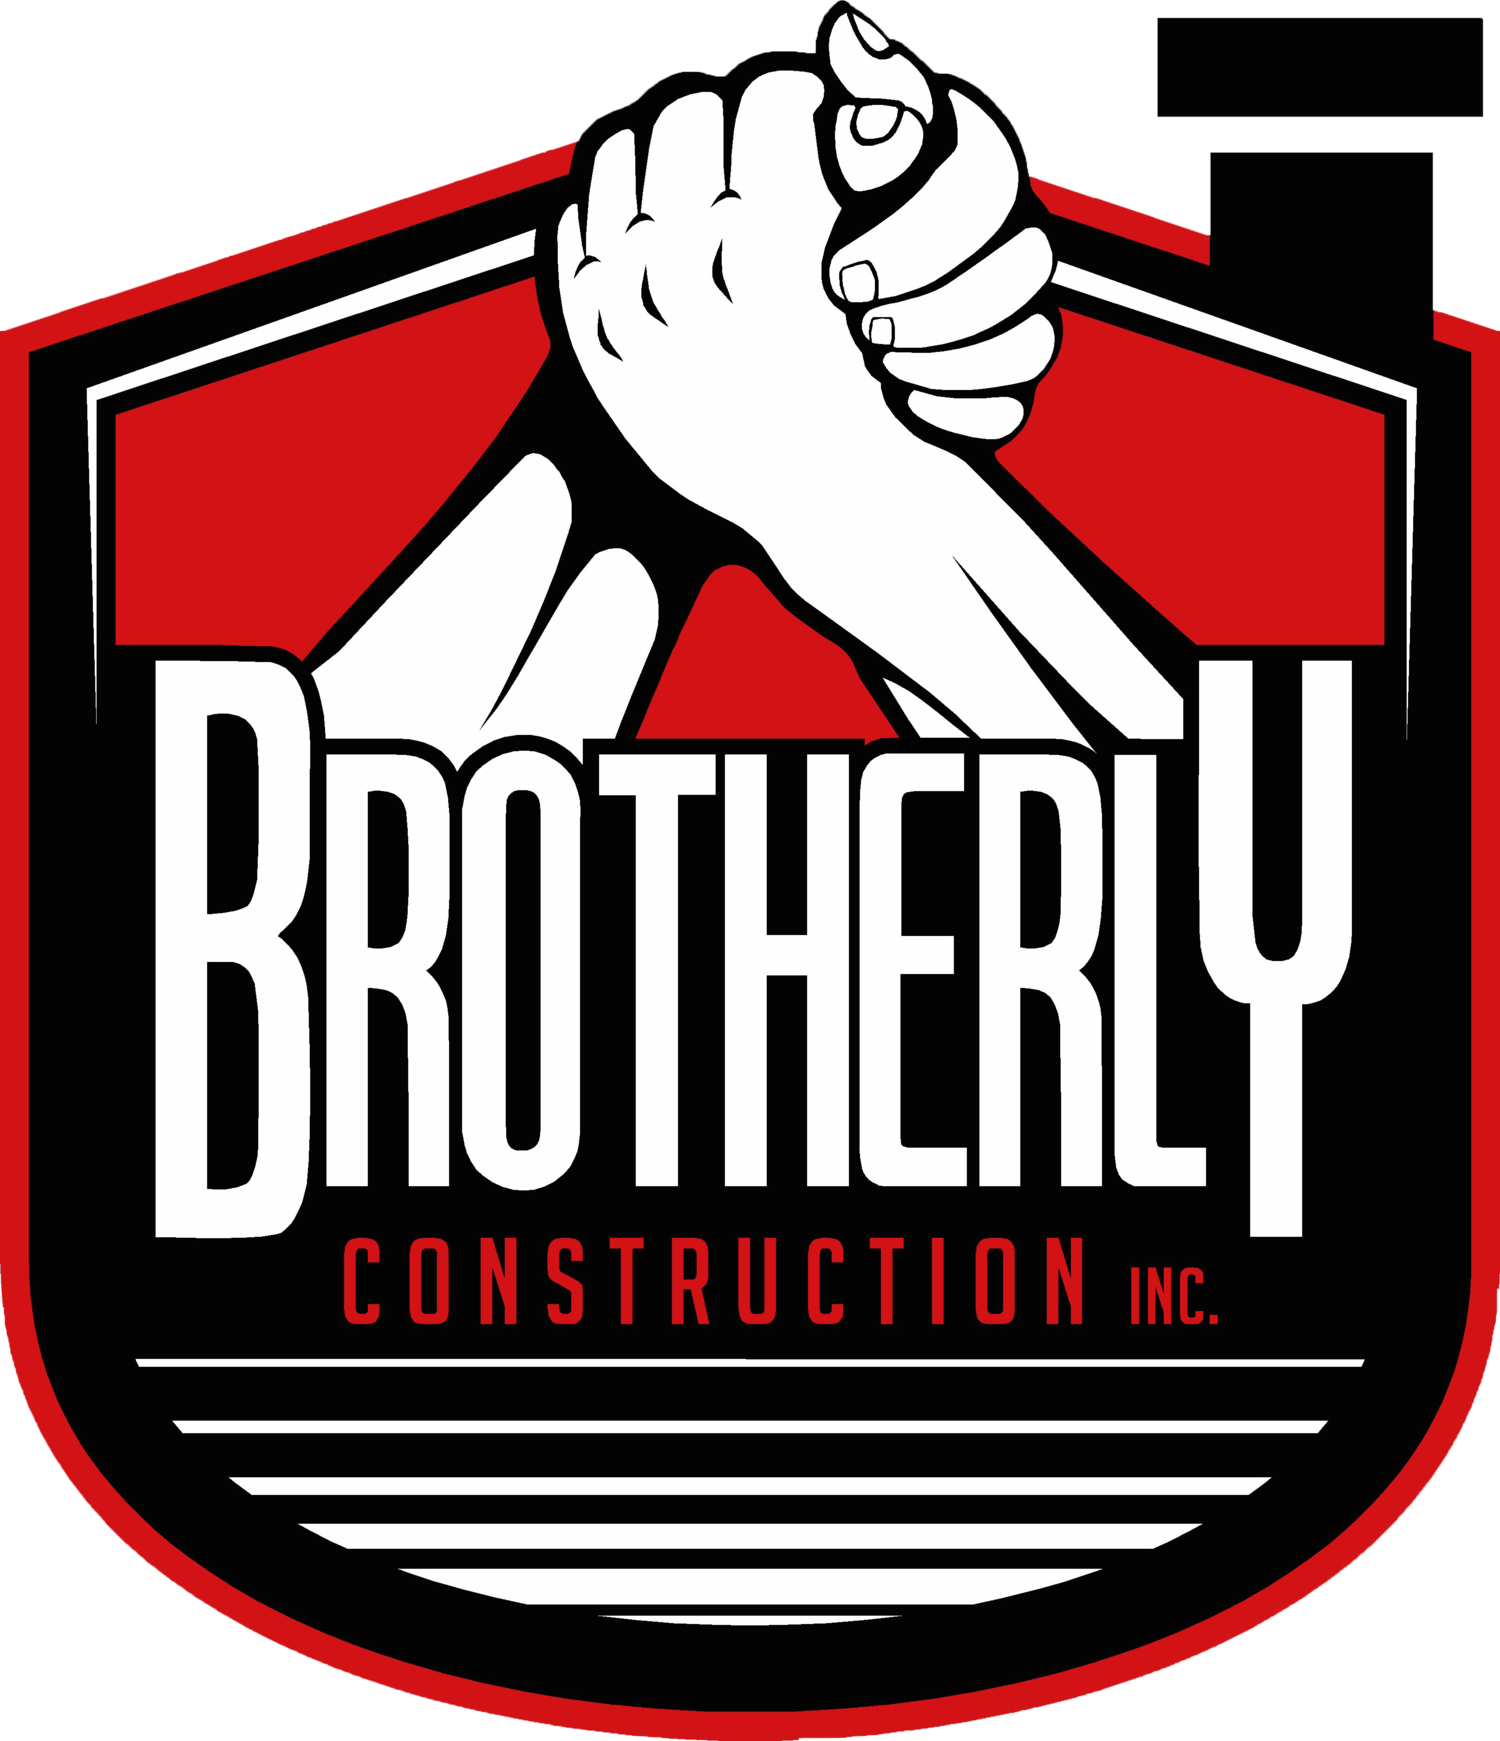 Brotherly Construction